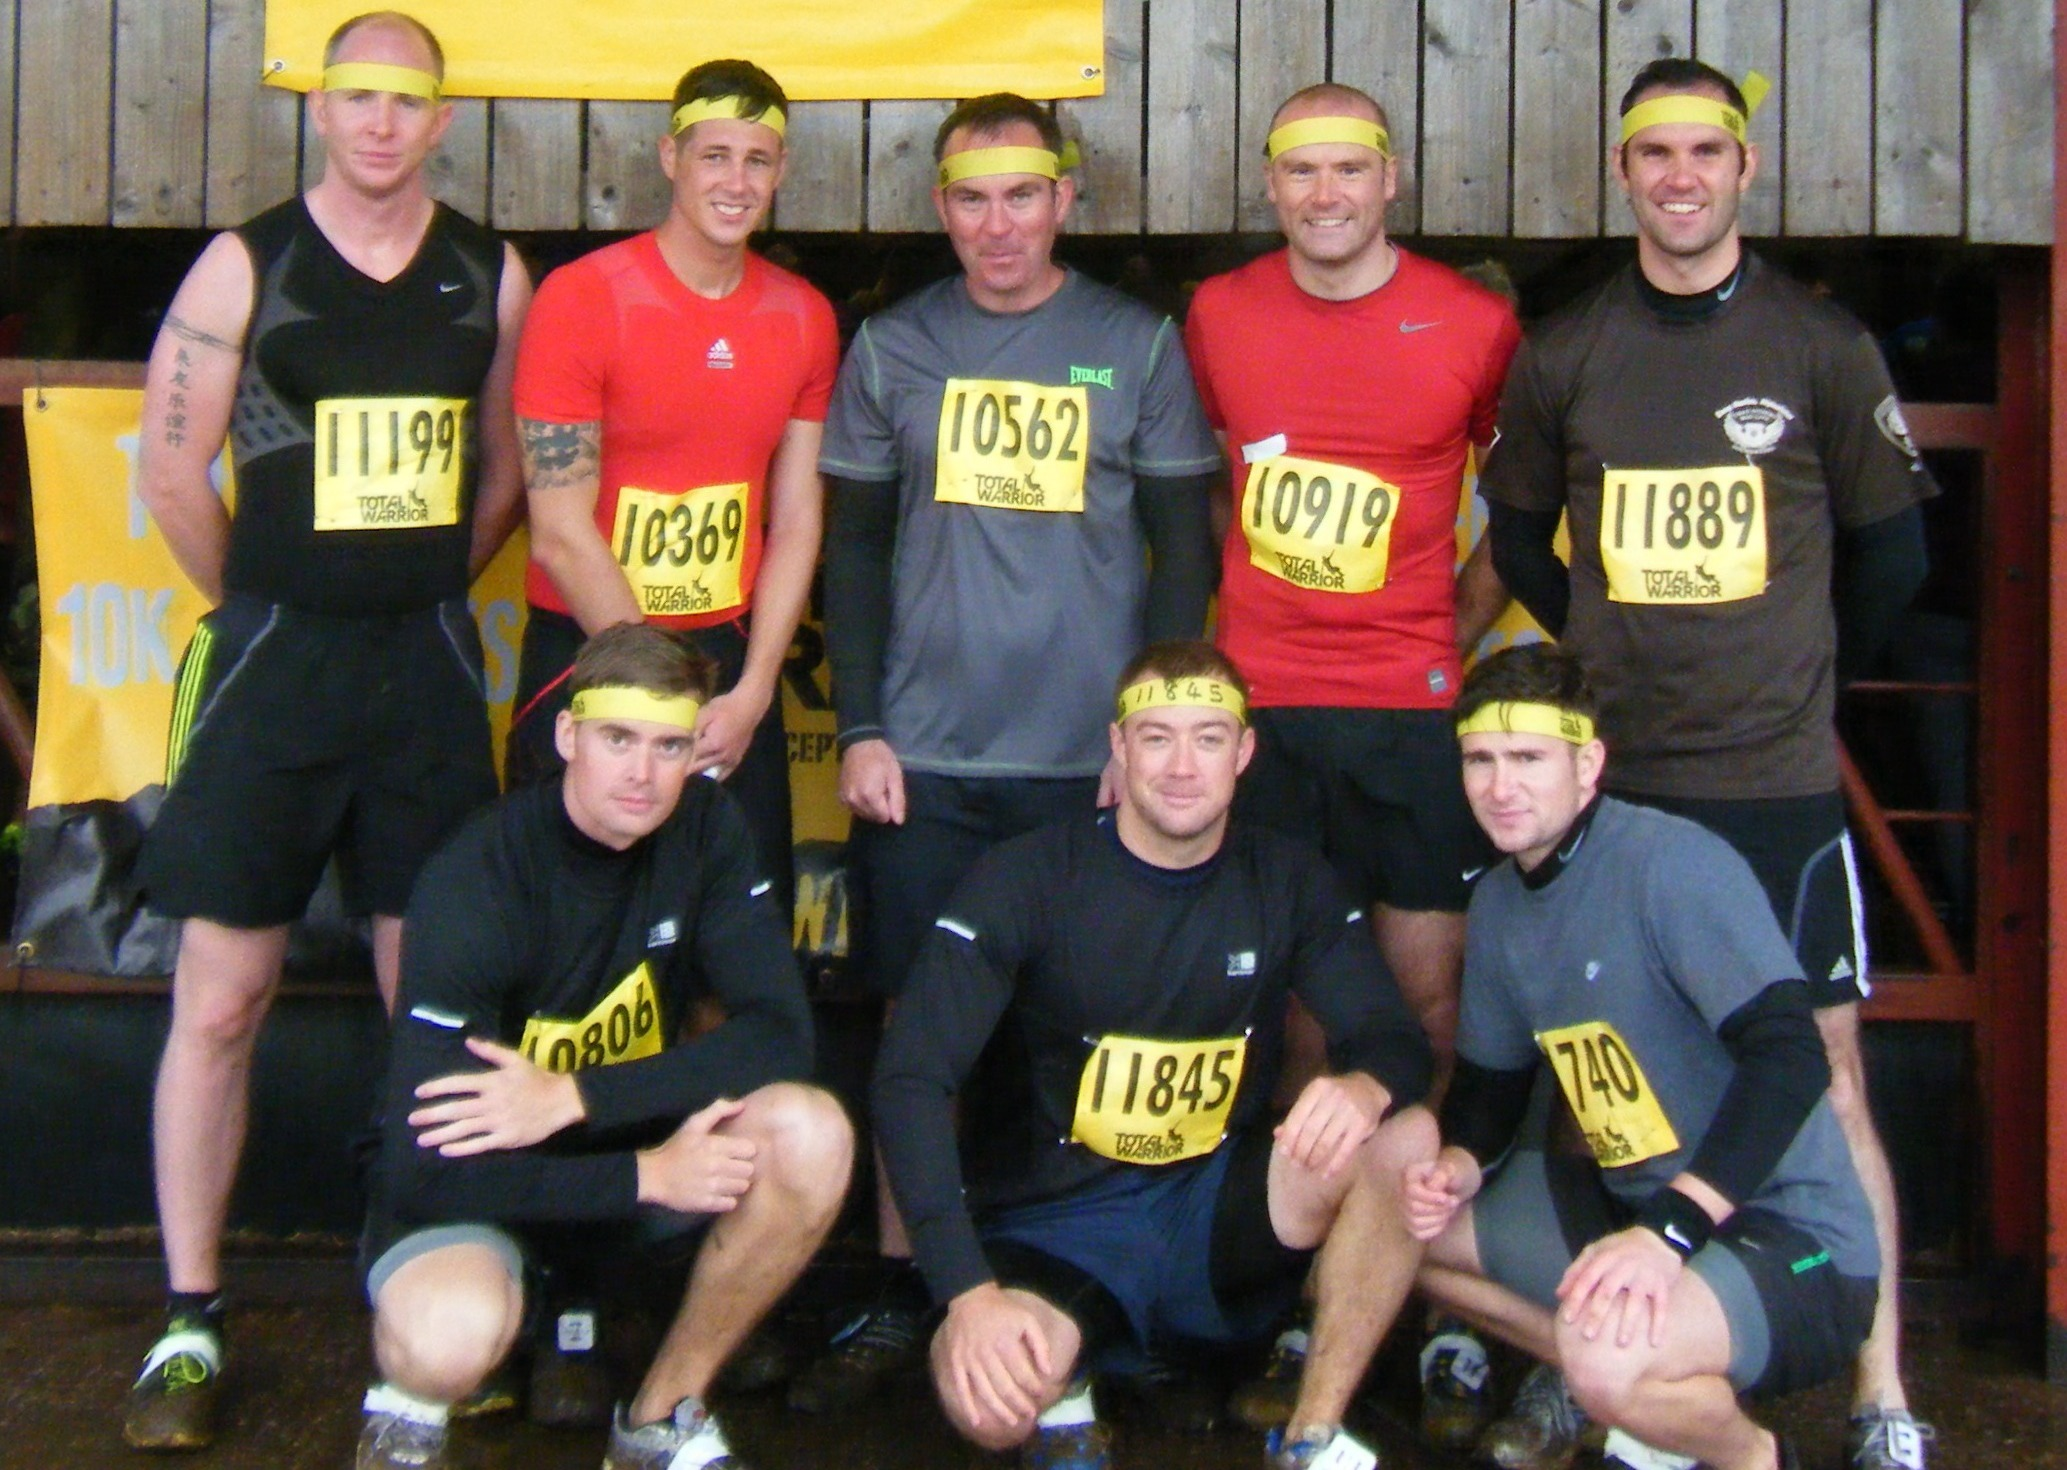 TOTAL WARRIOR: The team are all smiles efore the gruelling event.